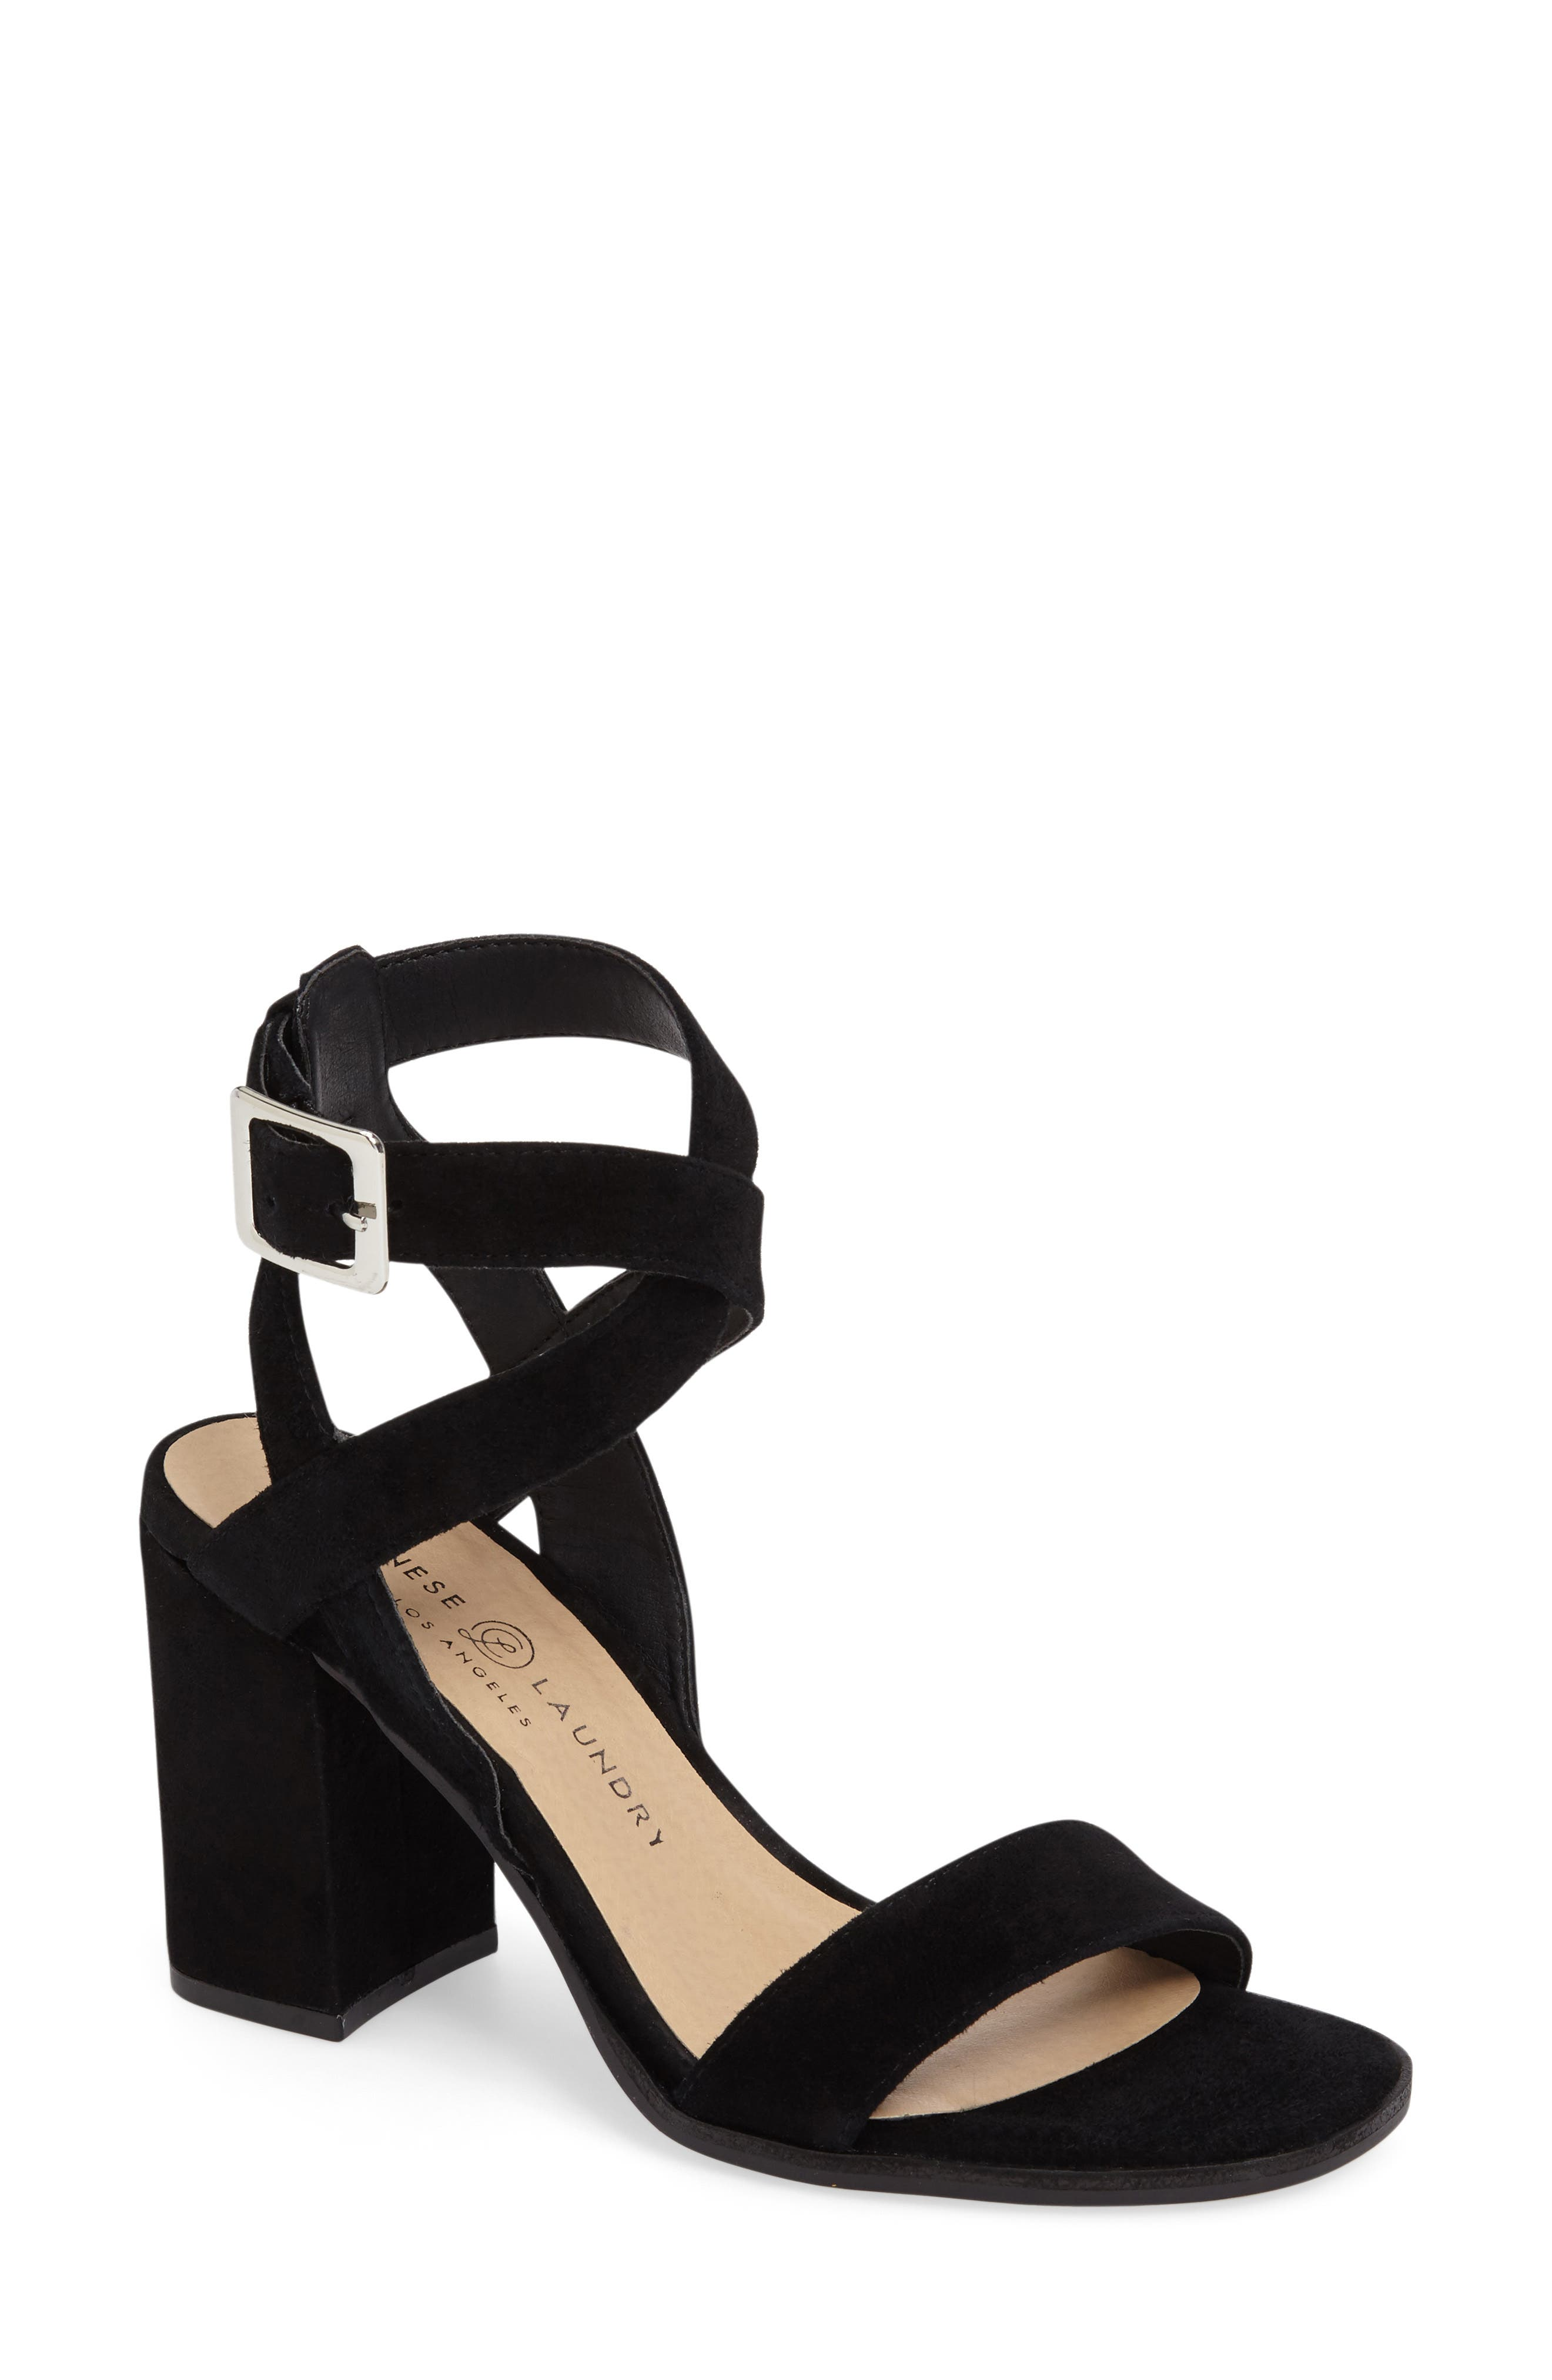 Sitara Ankle Strap Sandal,                         Main,                         color, 001